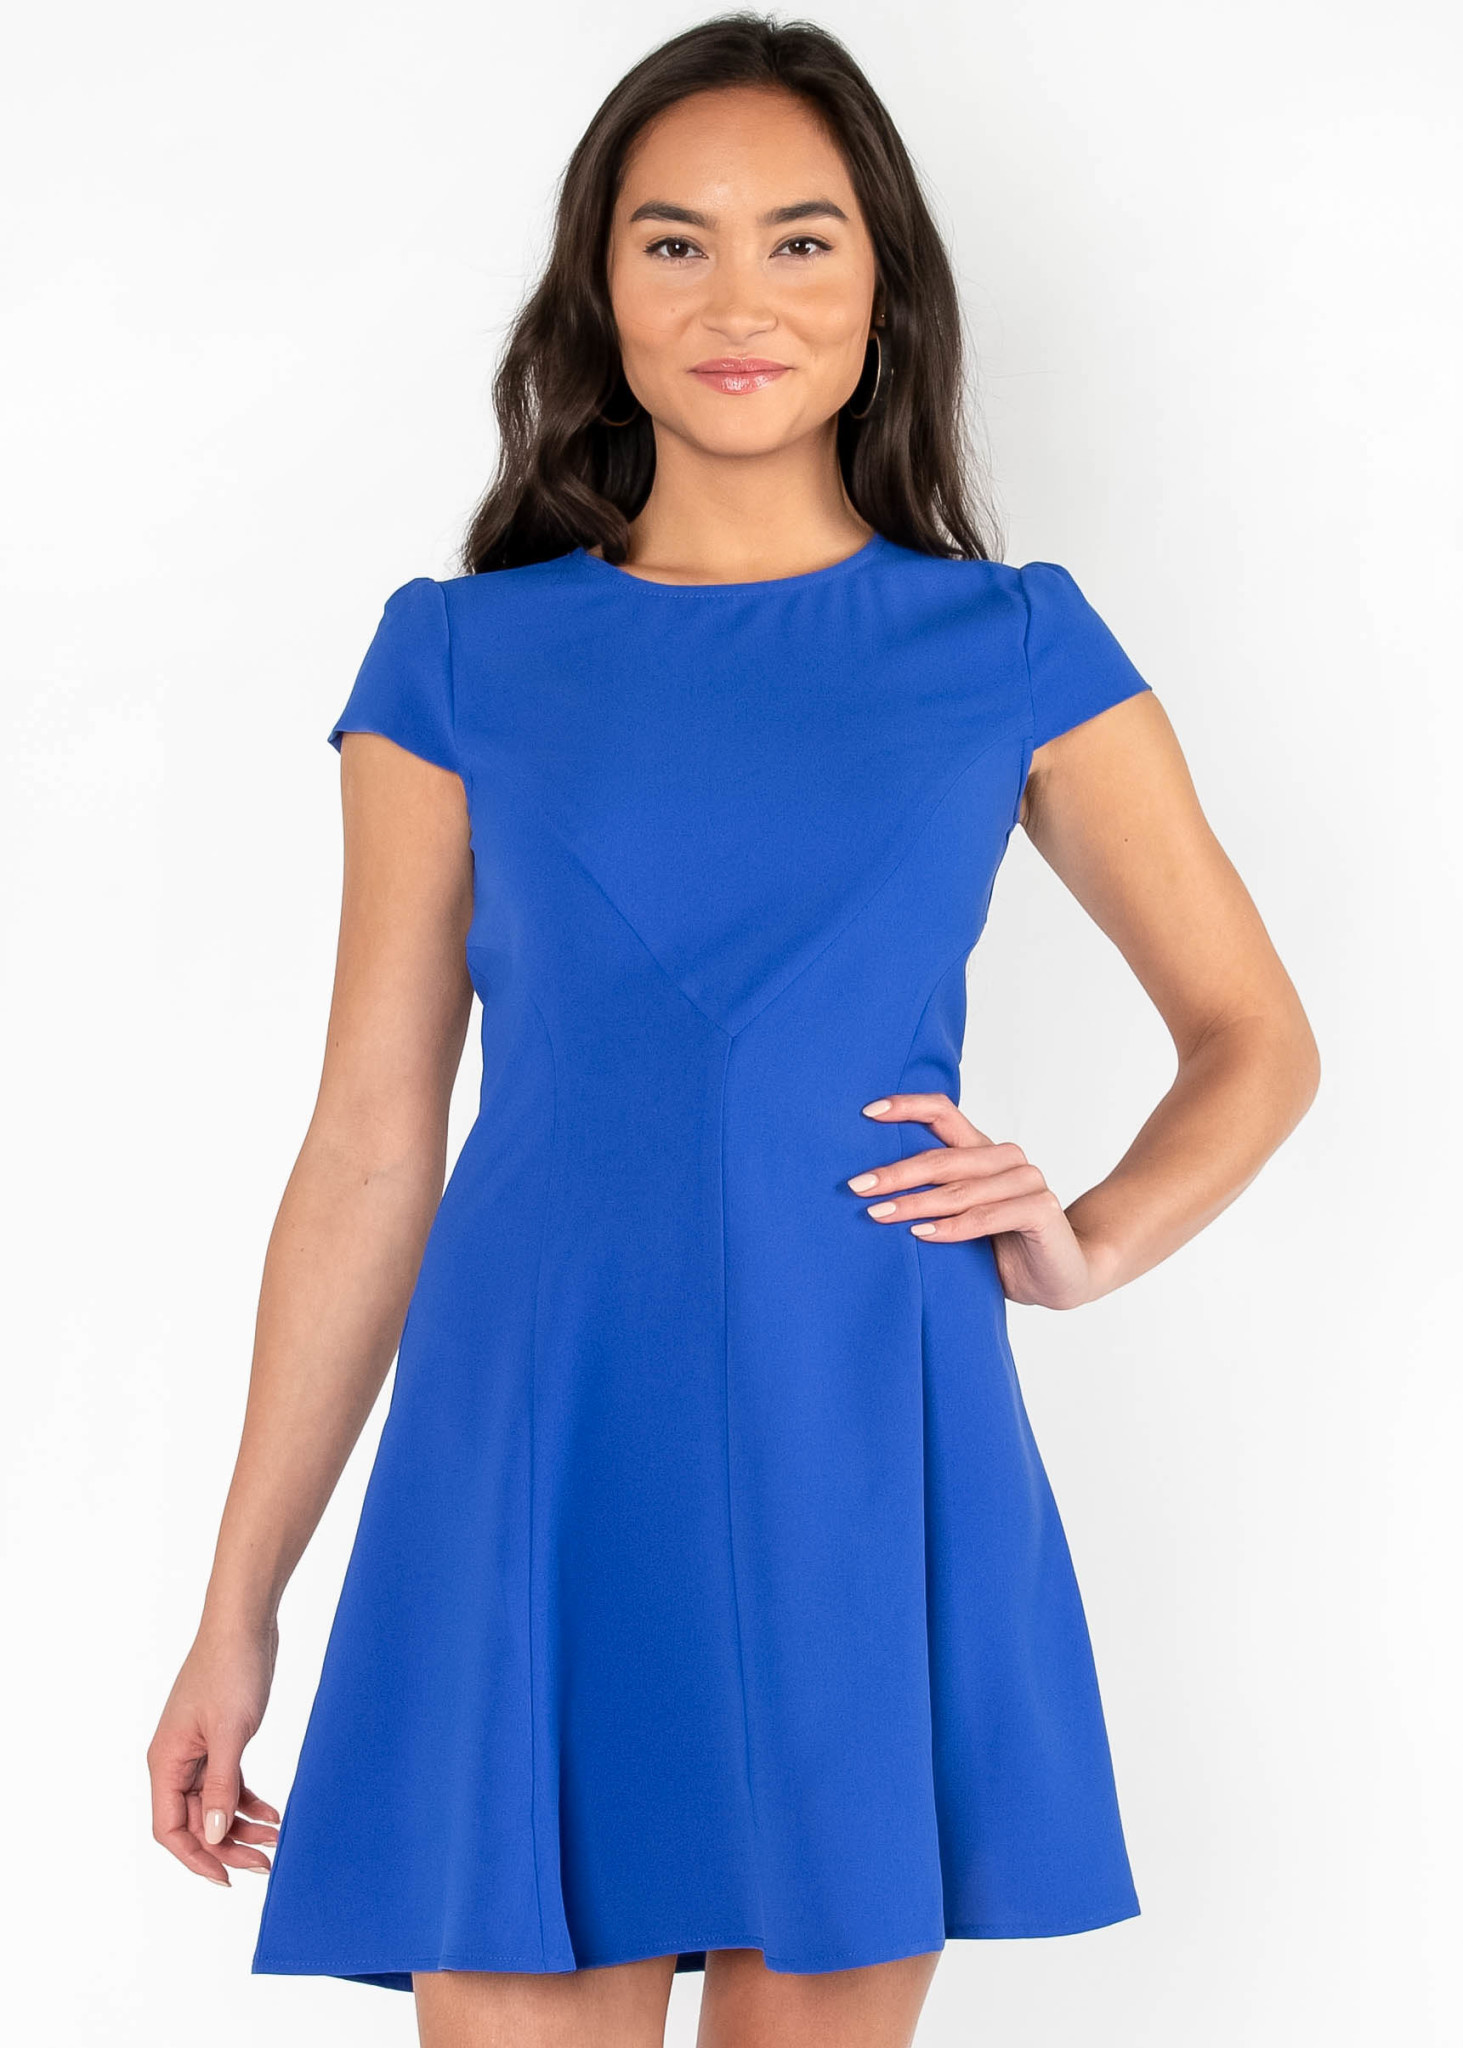 OH SO SWEET BLUE DRESS